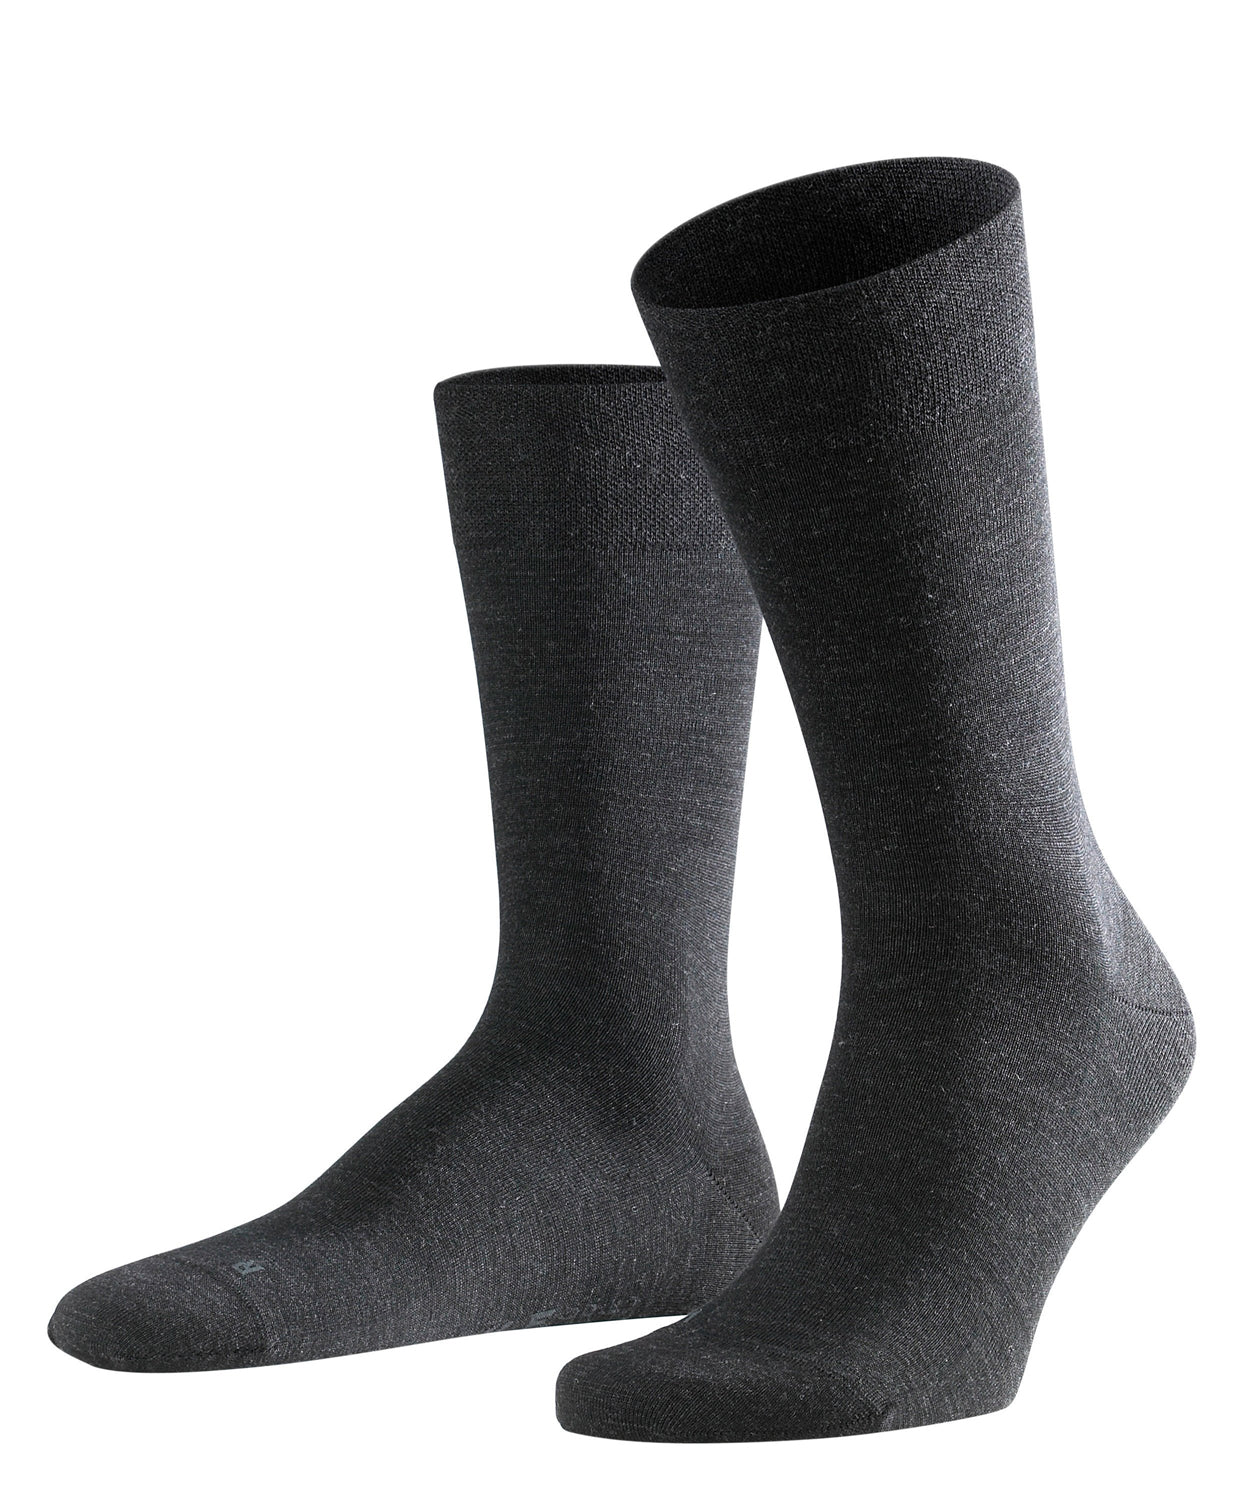 Falke Men's Sensitive Berlin Socks - Anthracite